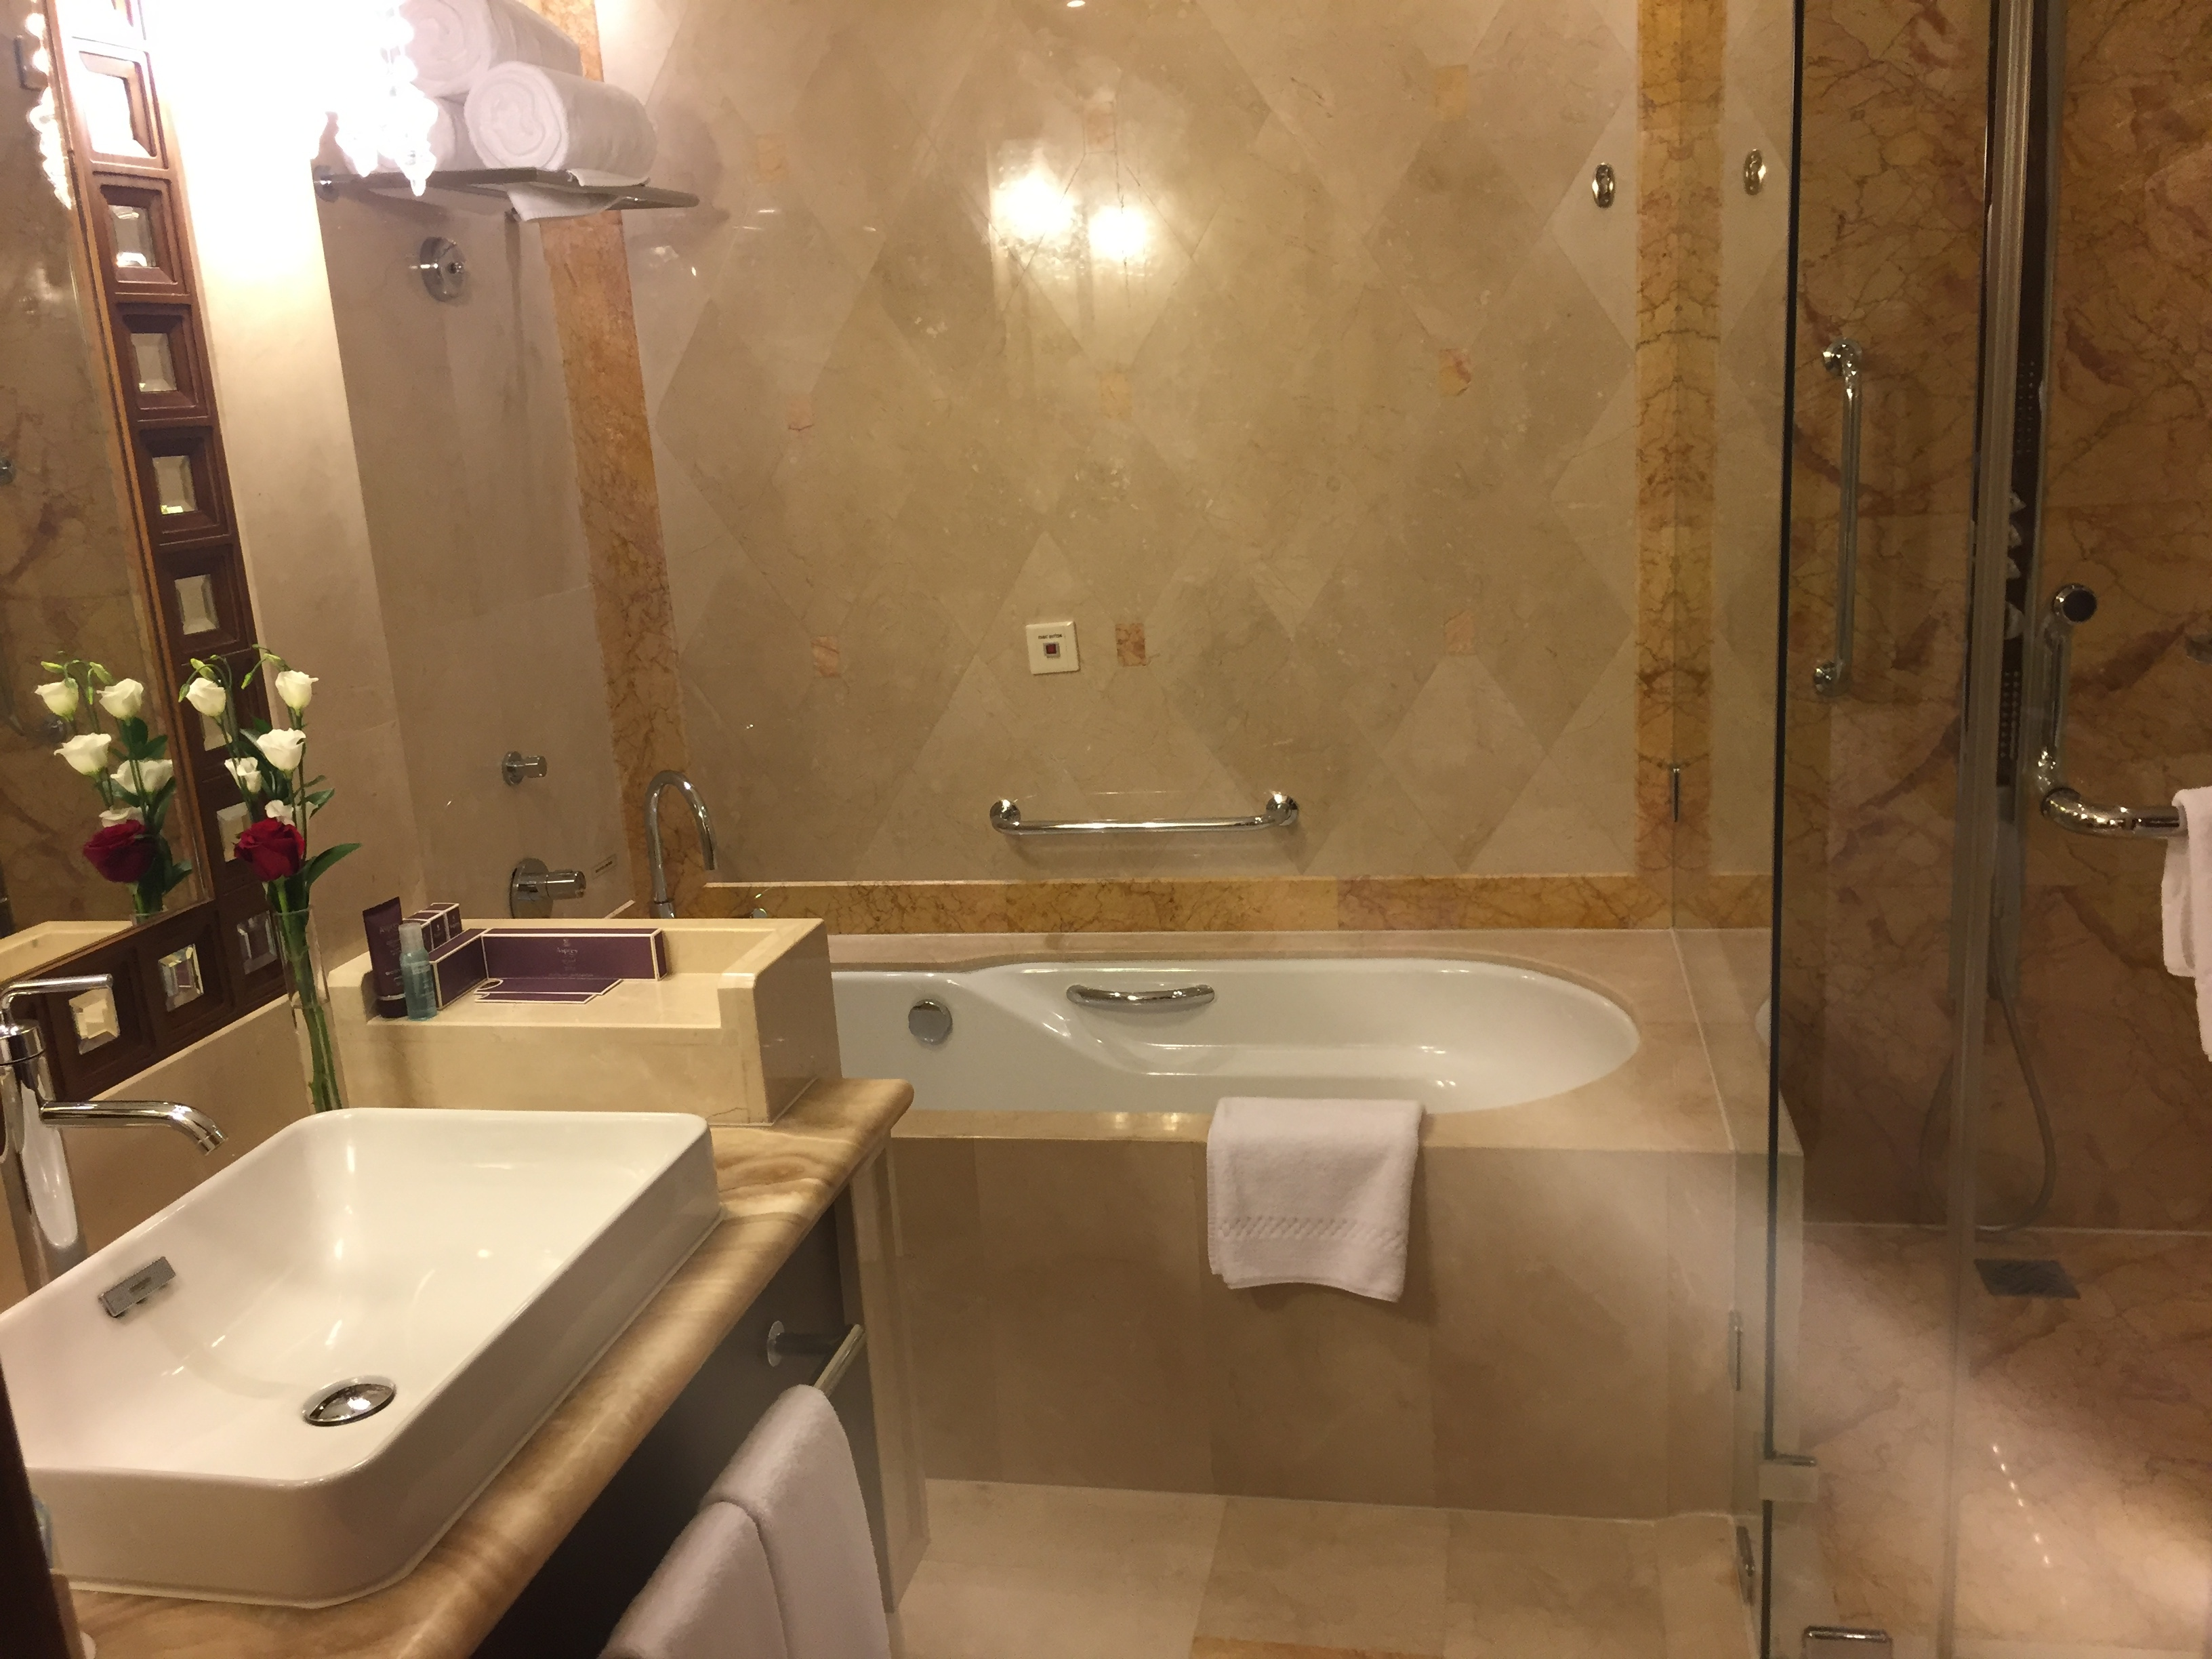 The Suite bathroom